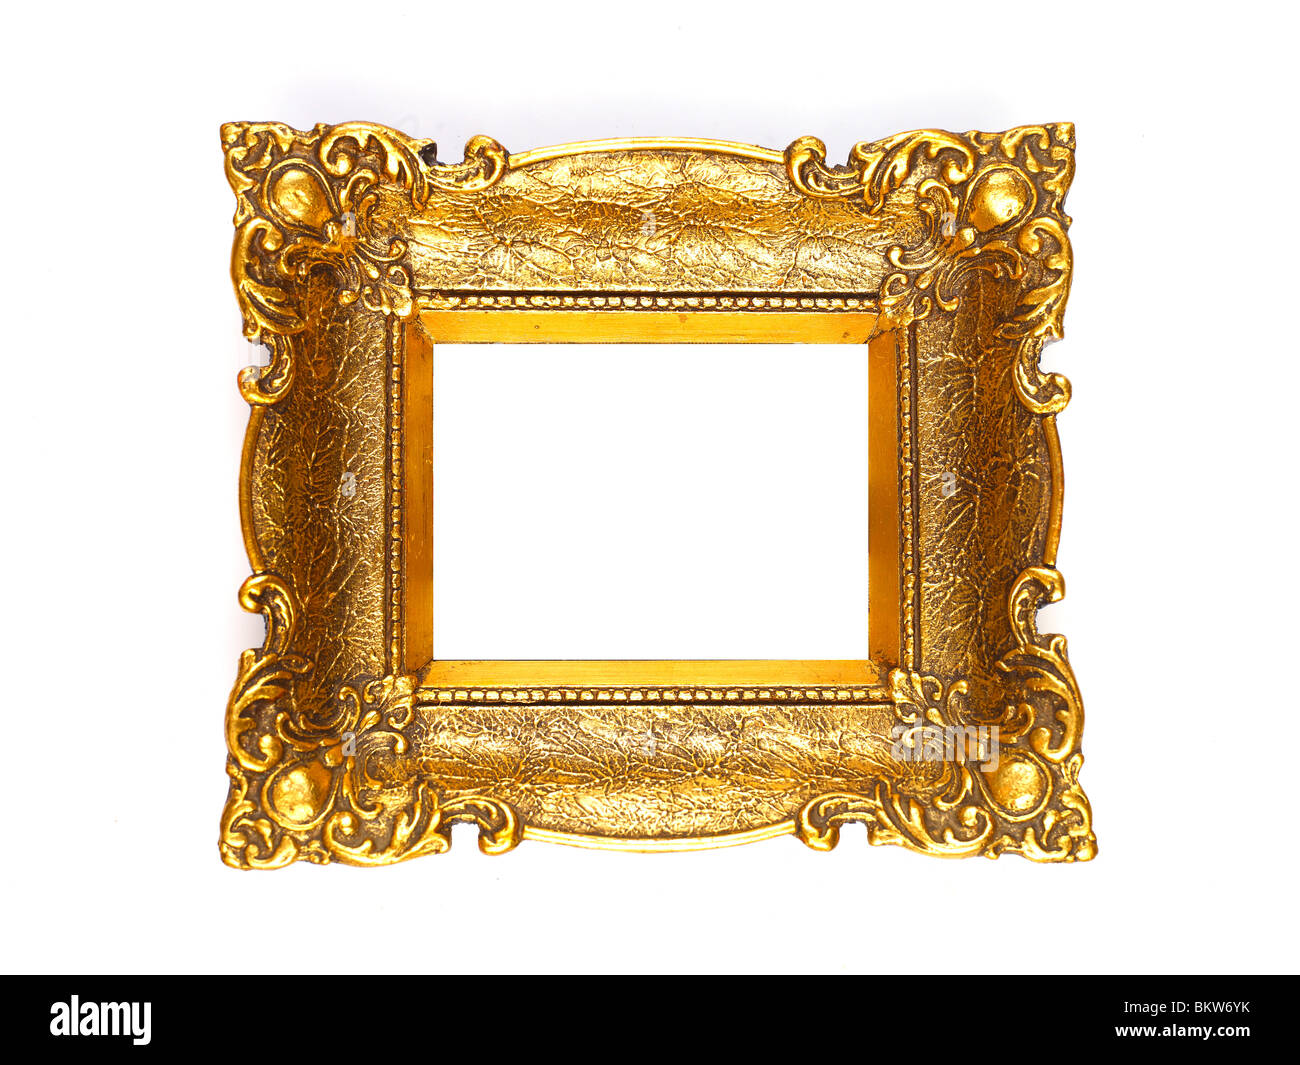 old gold picture frame isolated on white background. Black Bedroom Furniture Sets. Home Design Ideas